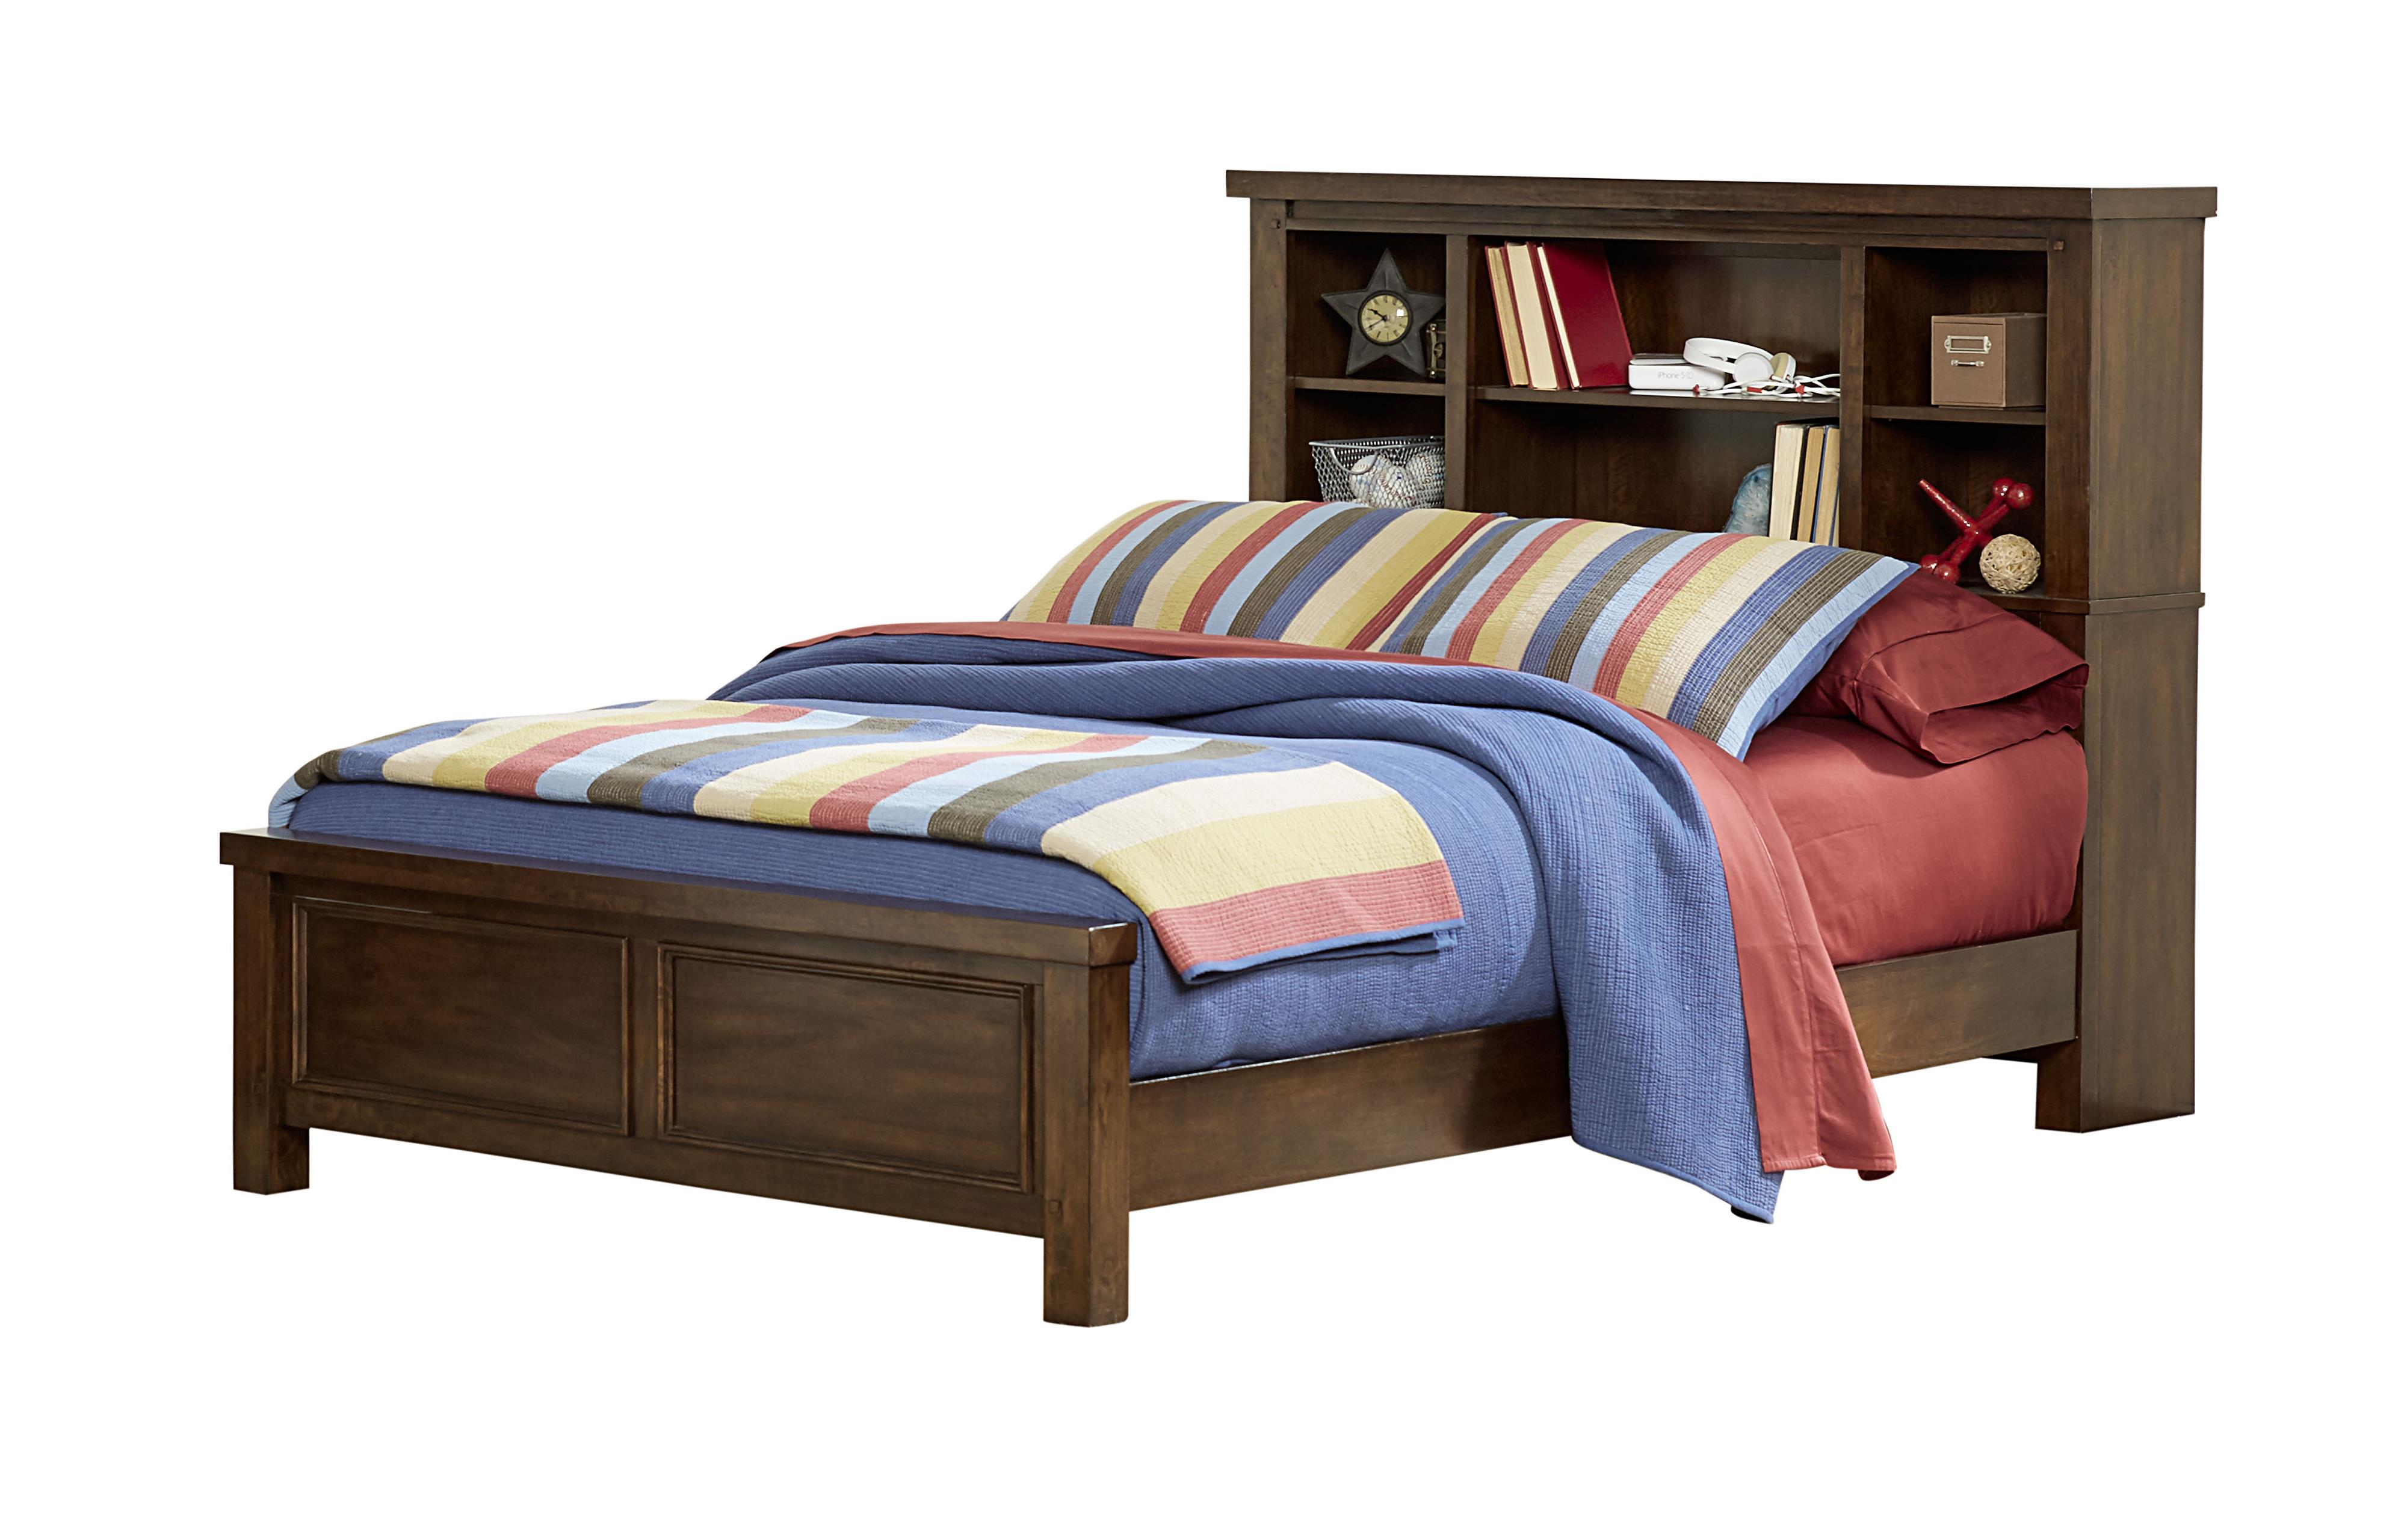 Standard Furniture Cameron Youth Twin Bookcase Bed - Item Number: 94081+94083+94092